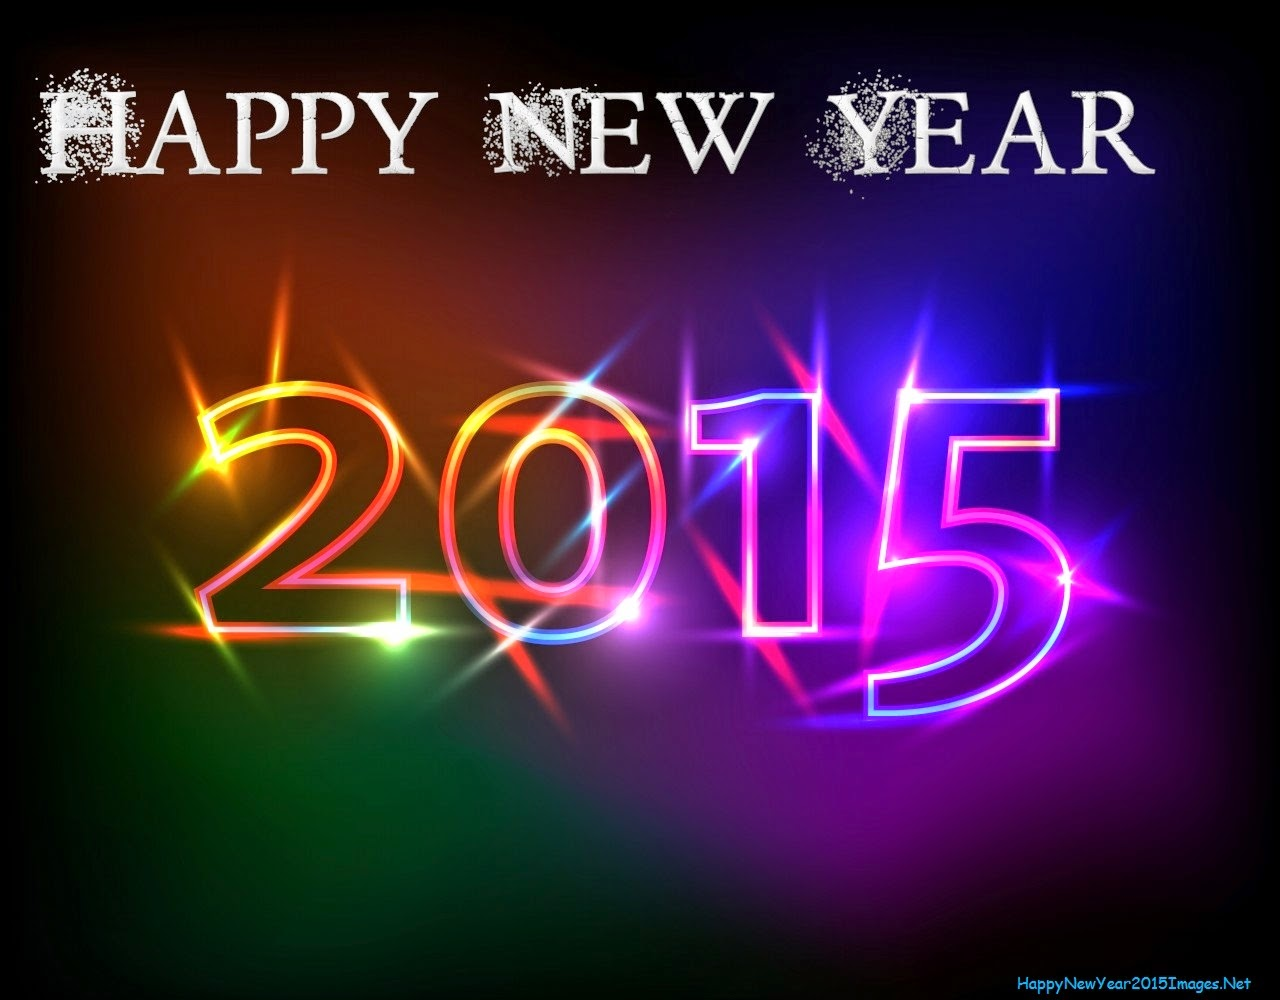 Happy New Year 2015 Hot Colors On Black Backgrounds.jpg